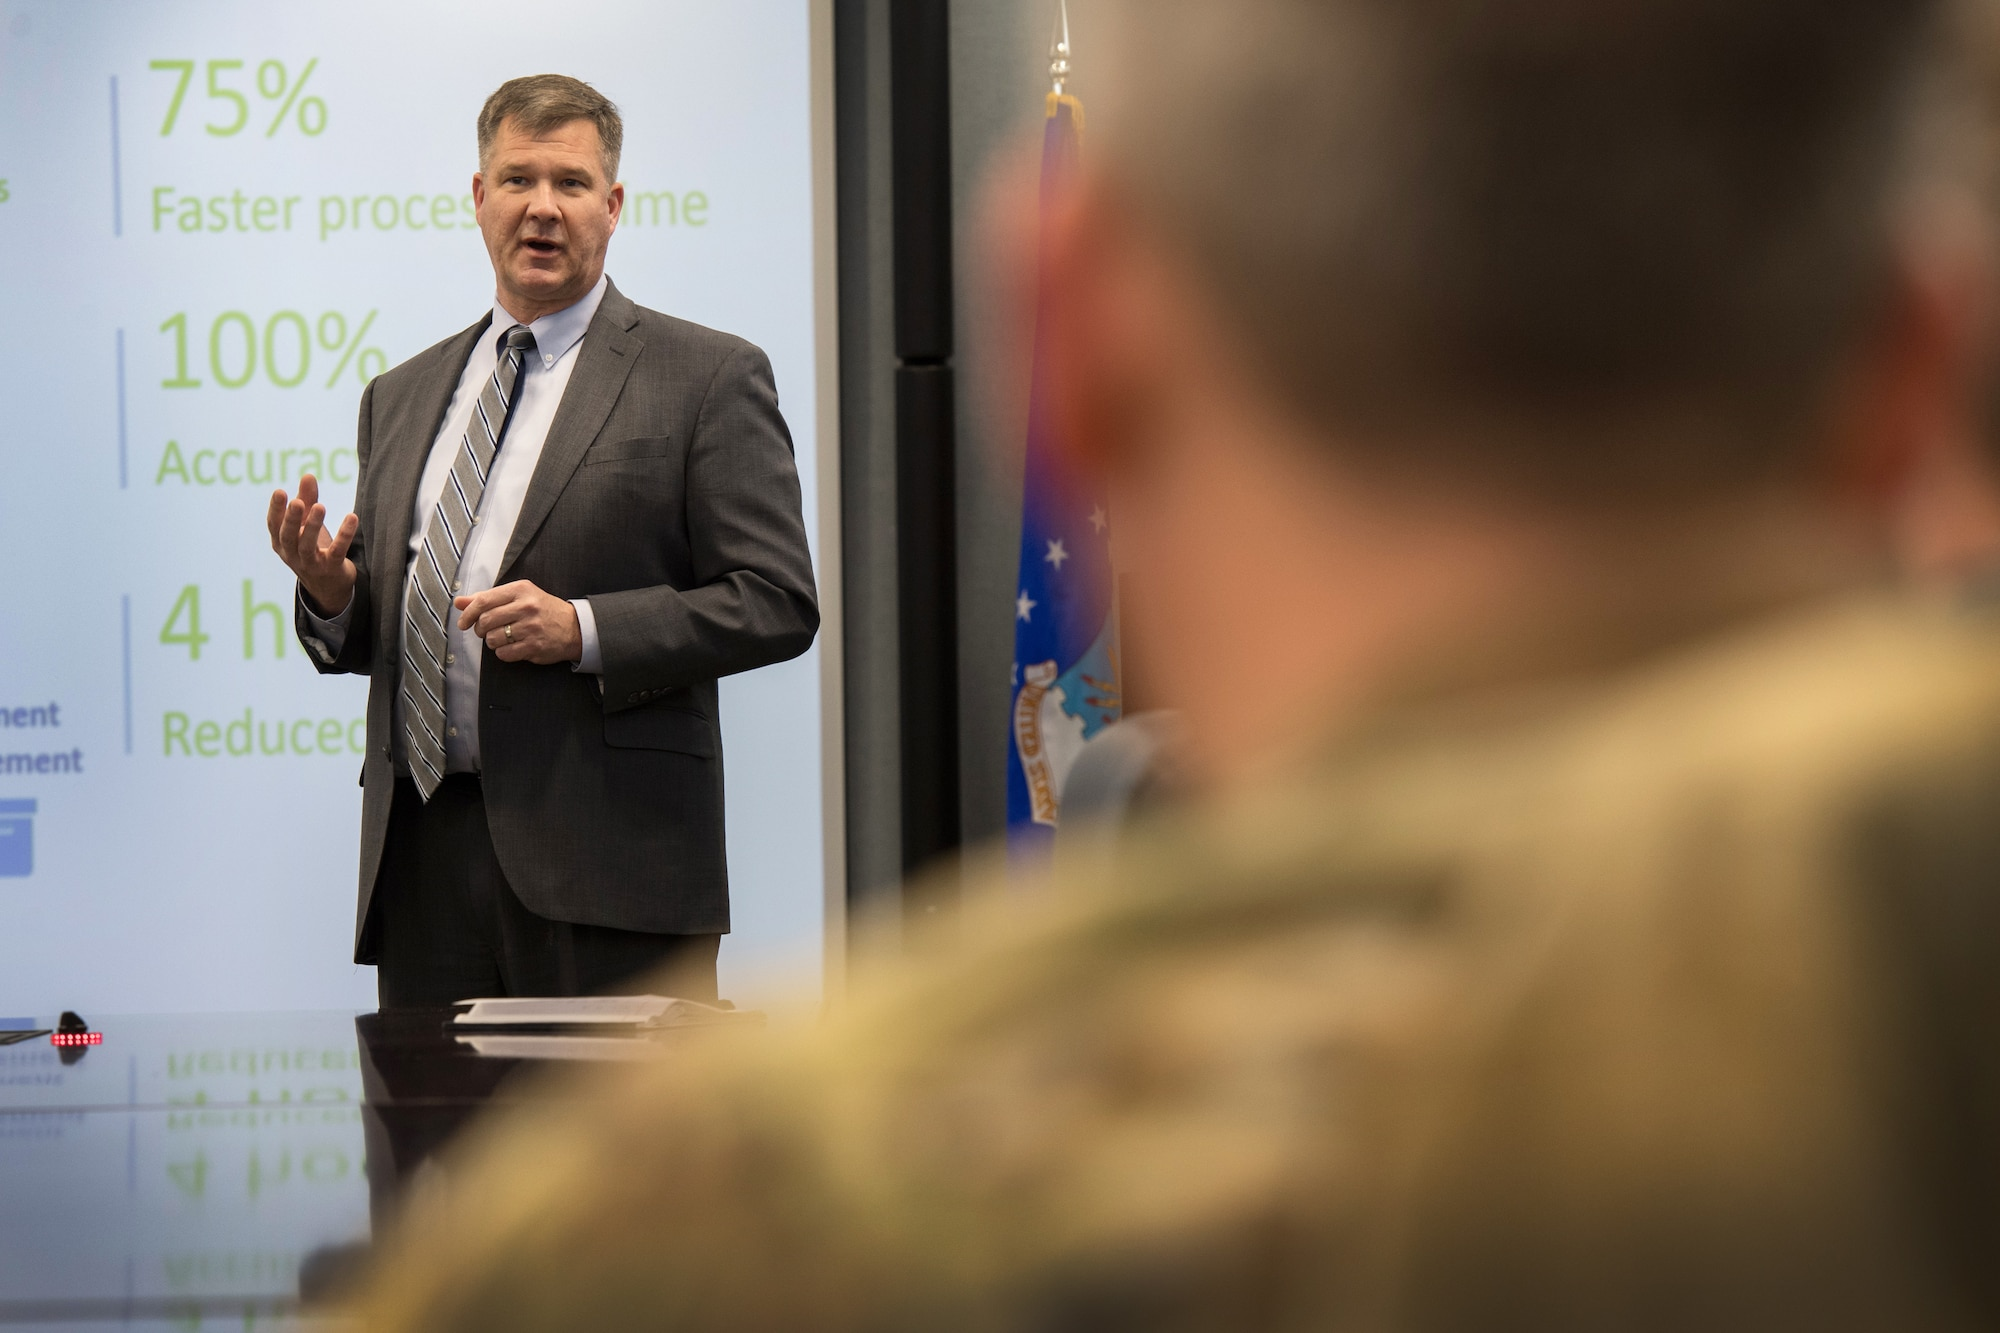 William Ross, Communications and Information Division (SC) director, briefs Col. Chad Ellsworth, 66th Air Base Group commander, on the potential use of robotic process automation during an RPA demonstration at Hanscom Air Force Base, Mass., Feb. 21. By collaborating with UiPath, a global software company that develops a platform for robotic process automation, the division will be able to increase productivity, accuracy, and overall mission success through the help of bots. (U.S. Air Force photo by Jerry Saslav)